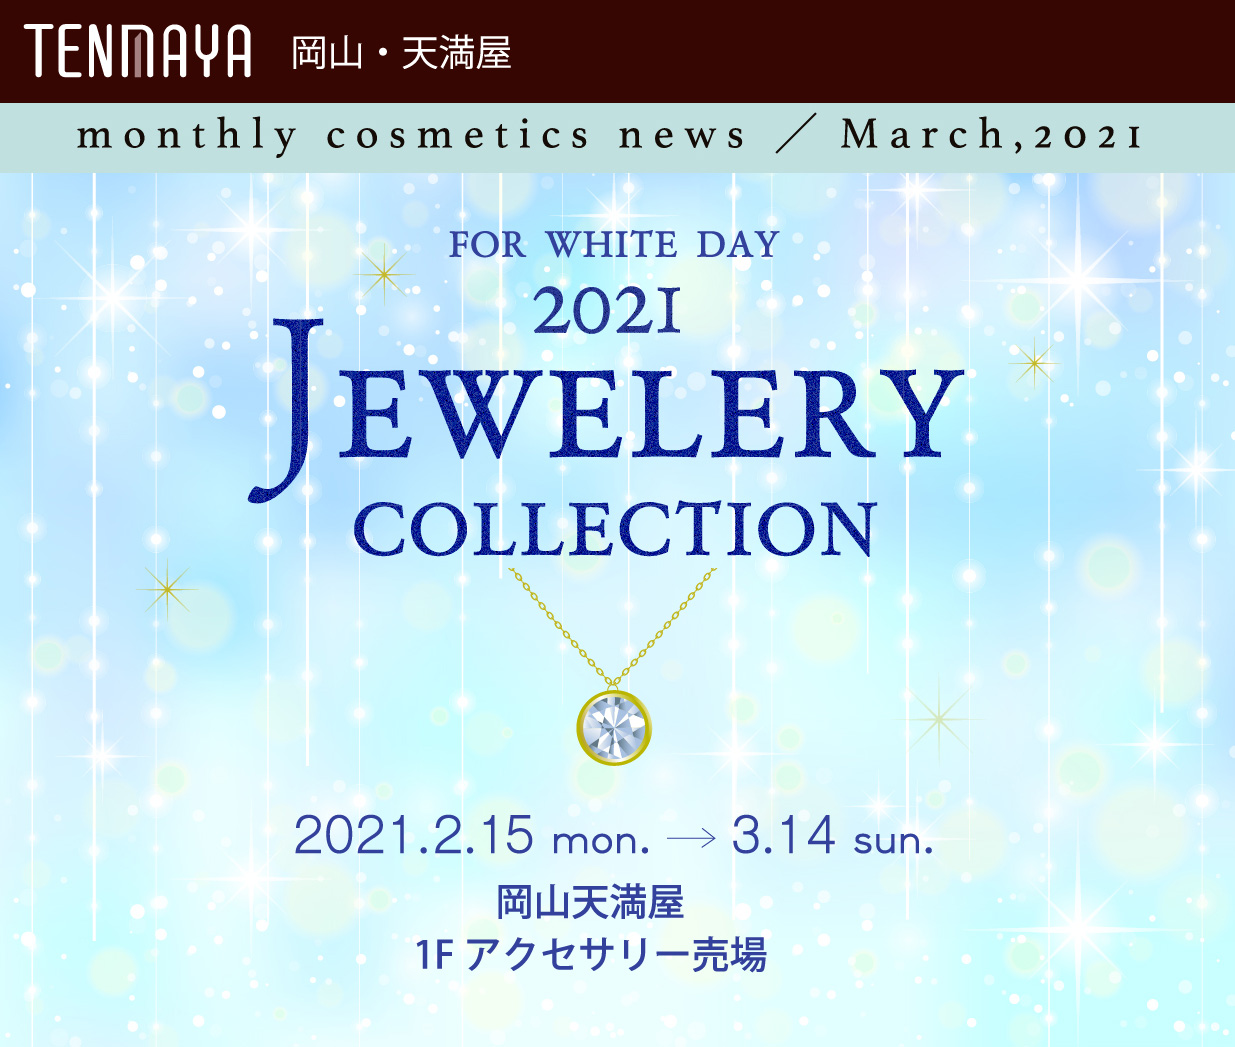 for white day 2021 Jewelery collection